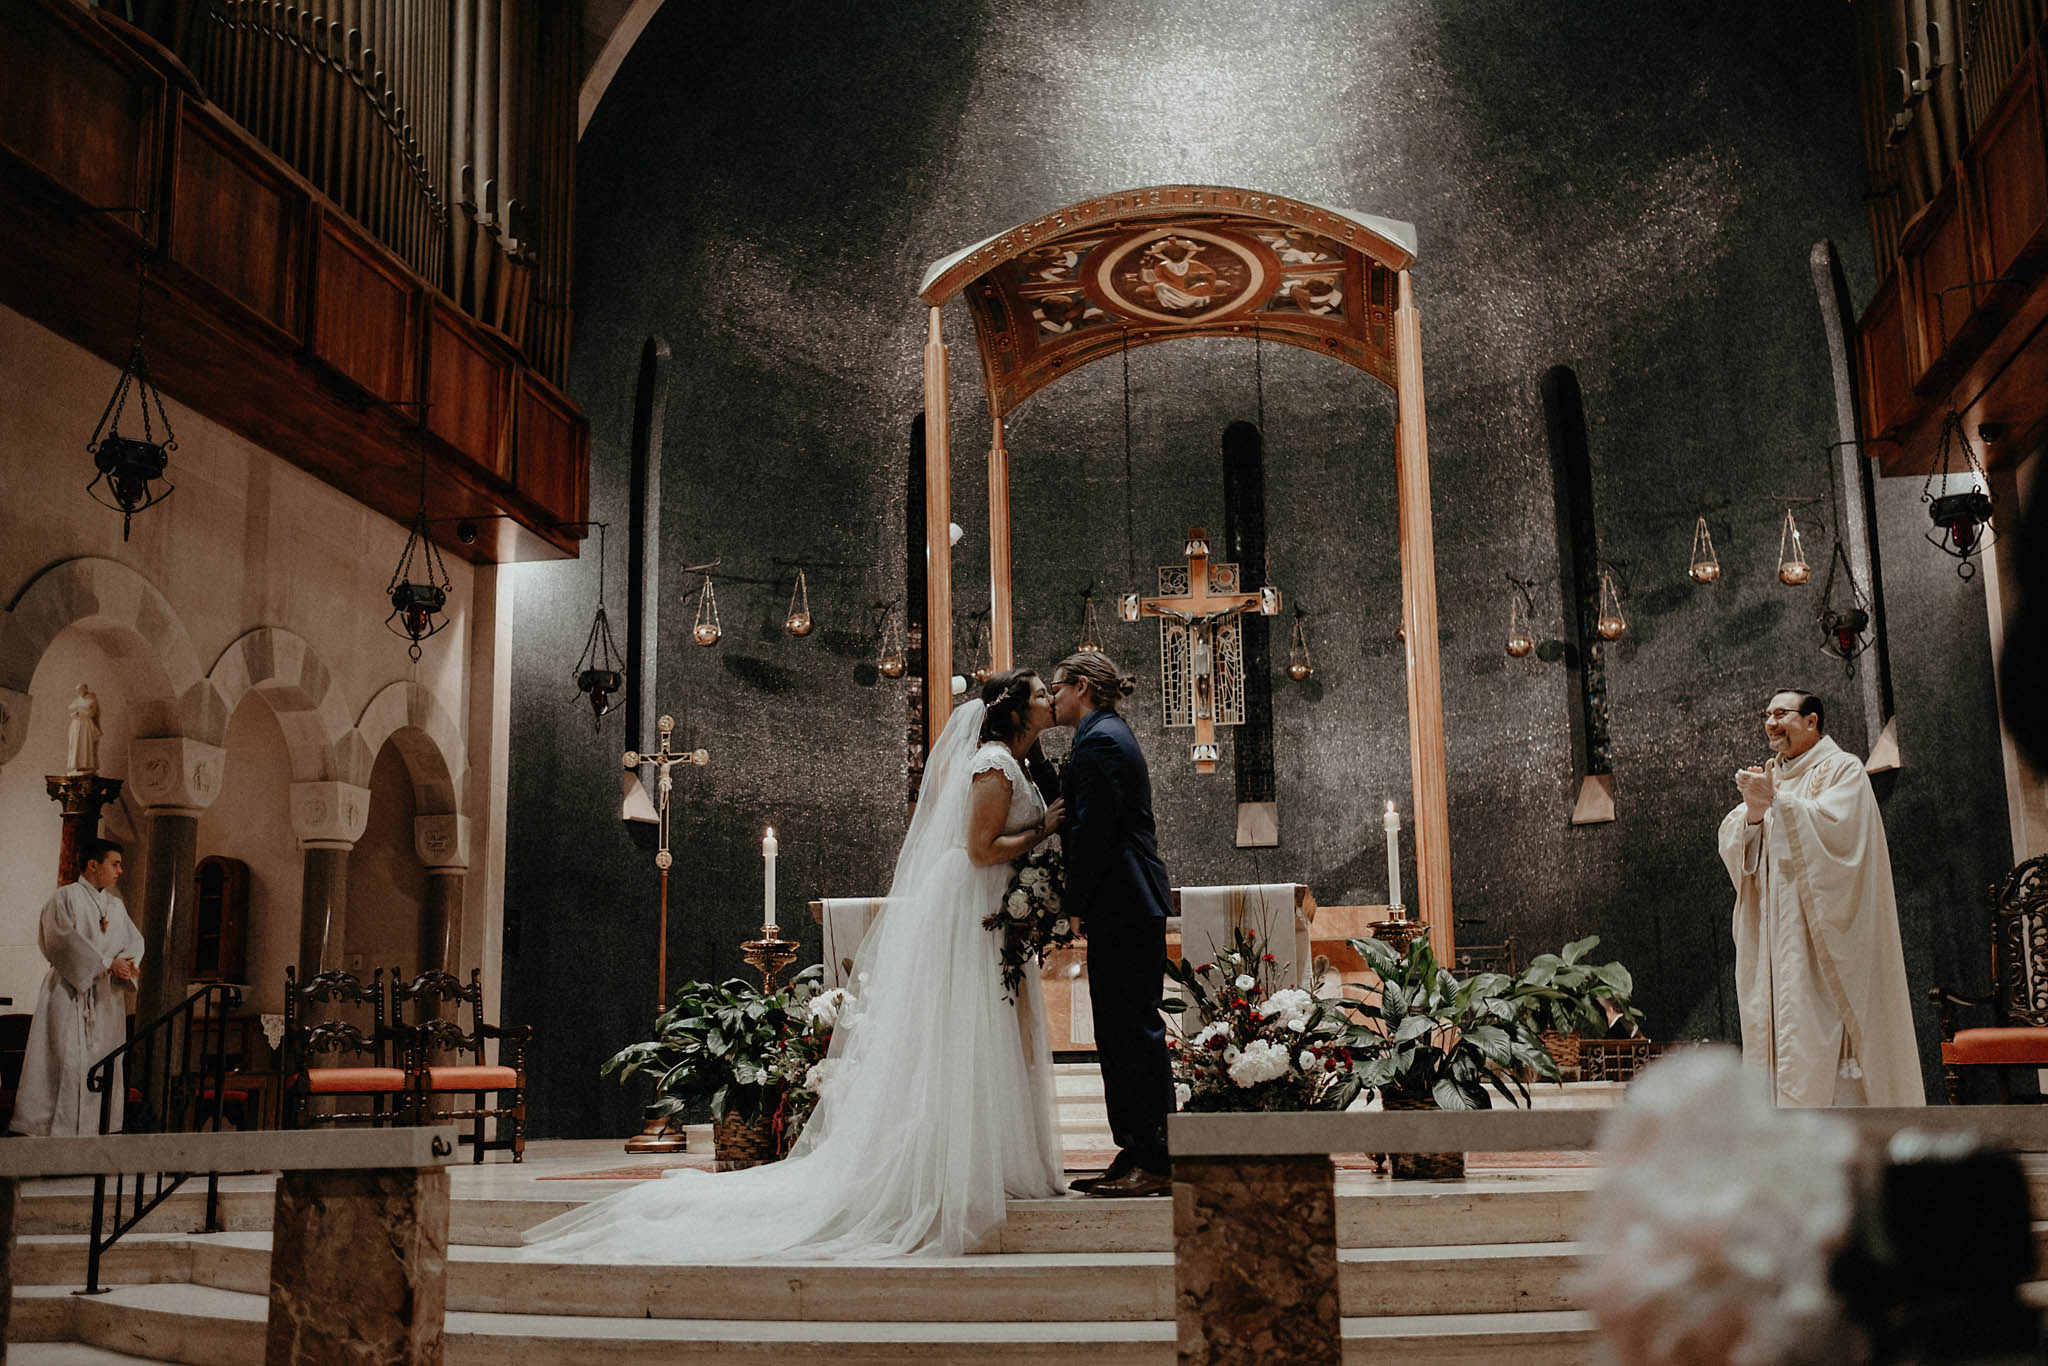 cincinnati warehouse wedding photographer cathedral church ceremony kissing bride and groom